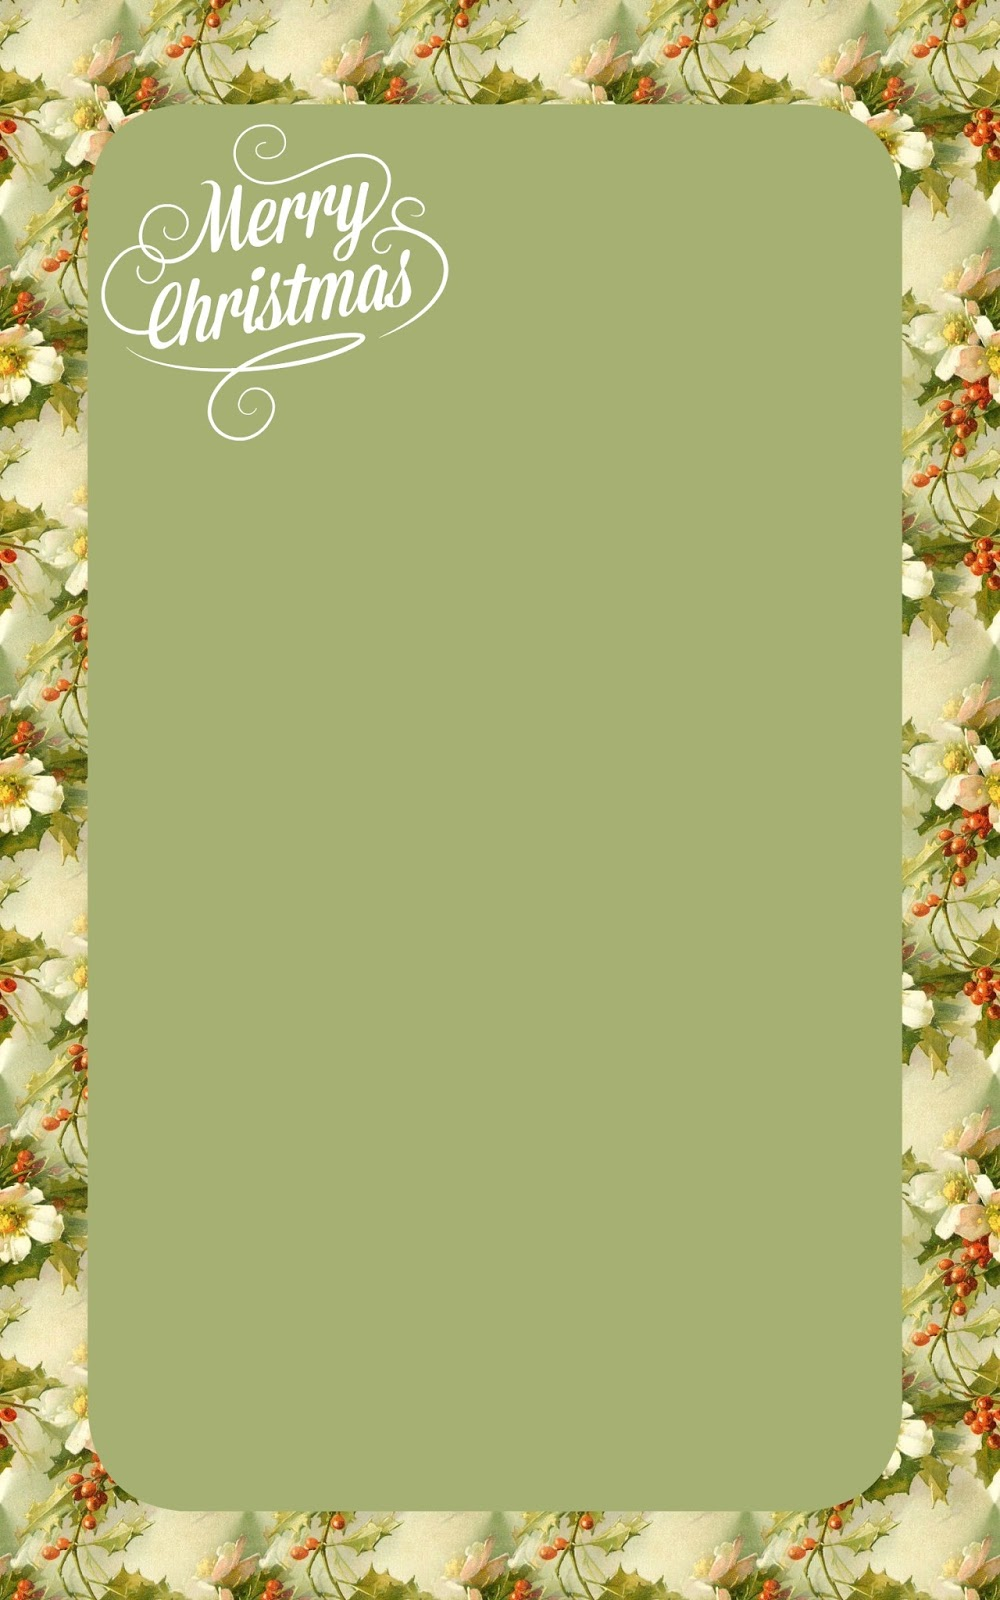 Free Vintage Images: Free Christmas Printable Stationery